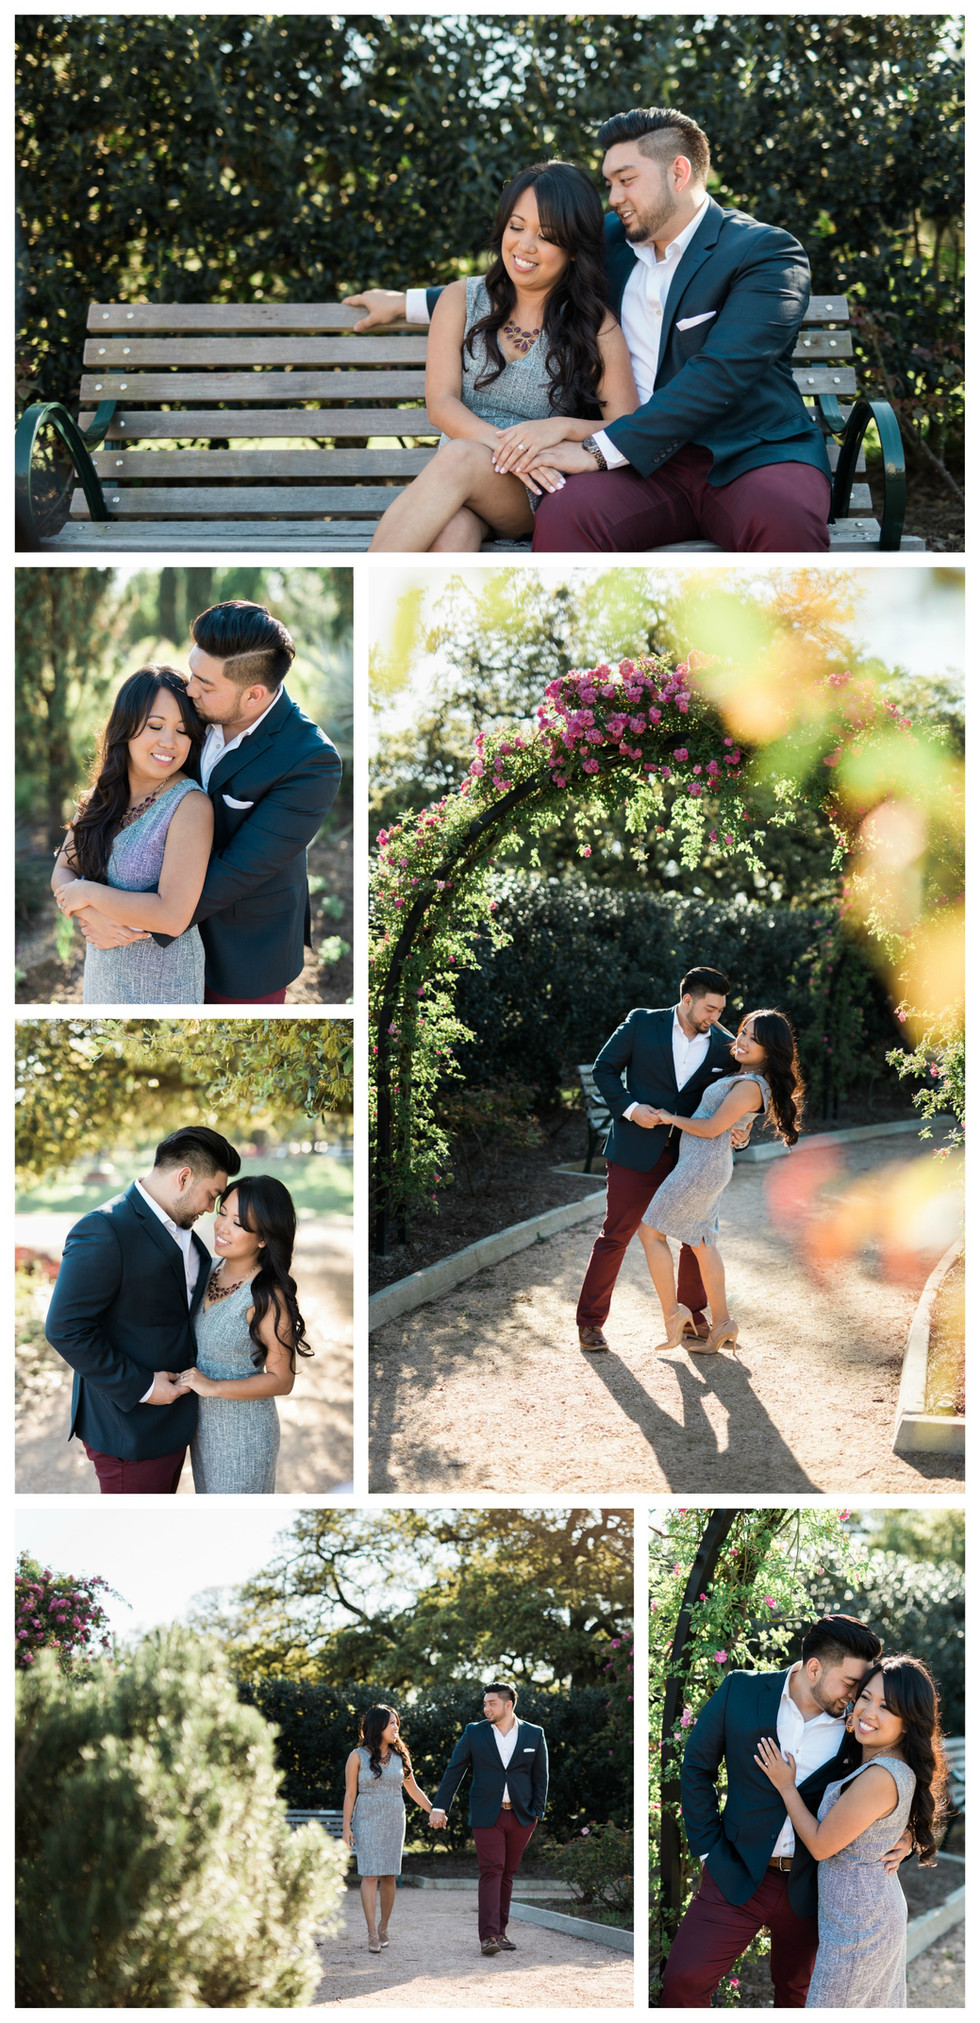 Jenny & Luis | Engagement Session